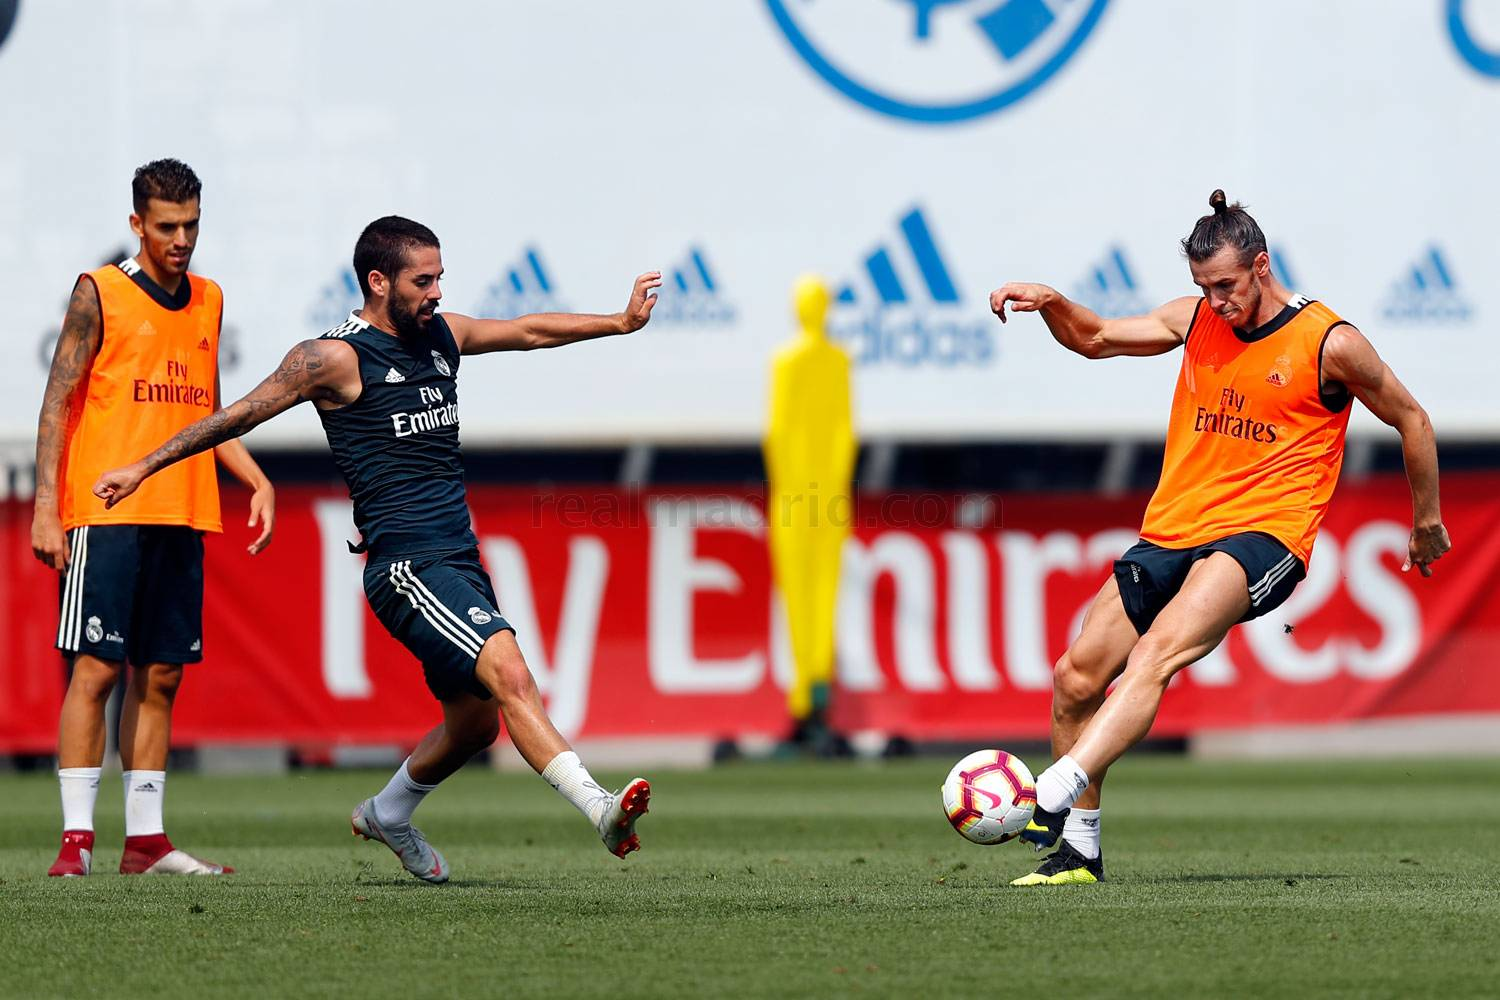 Real Madrid - Entrenamiento del Real Madrid - 22-08-2018